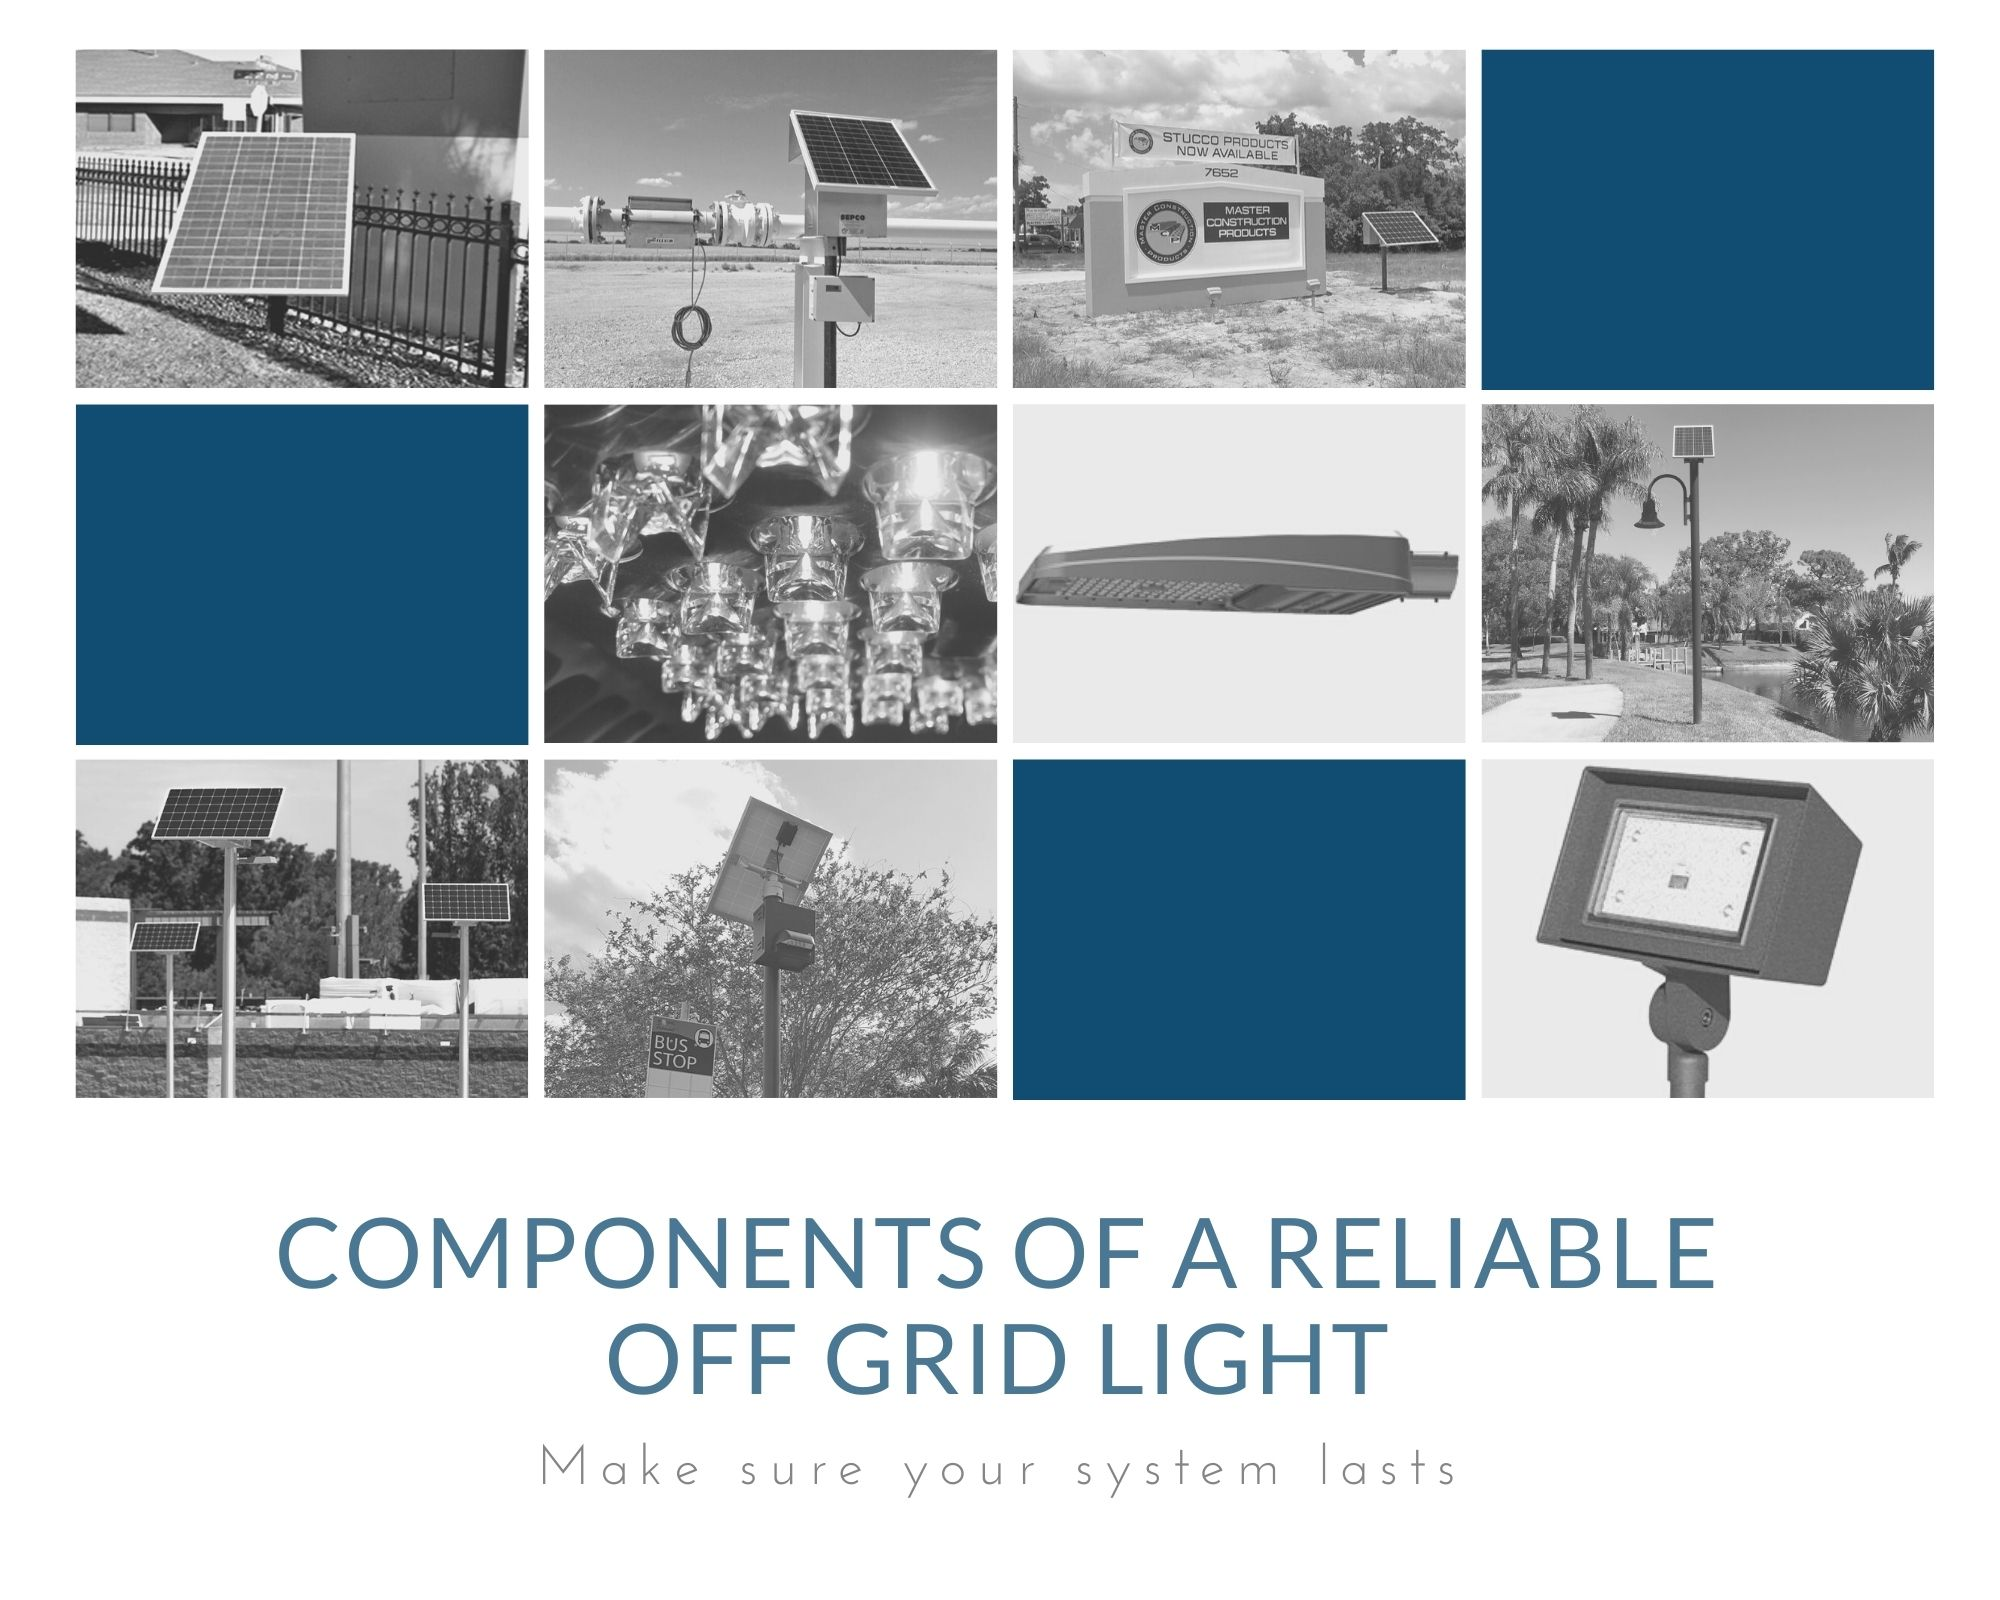 Components of a reliable off grid light